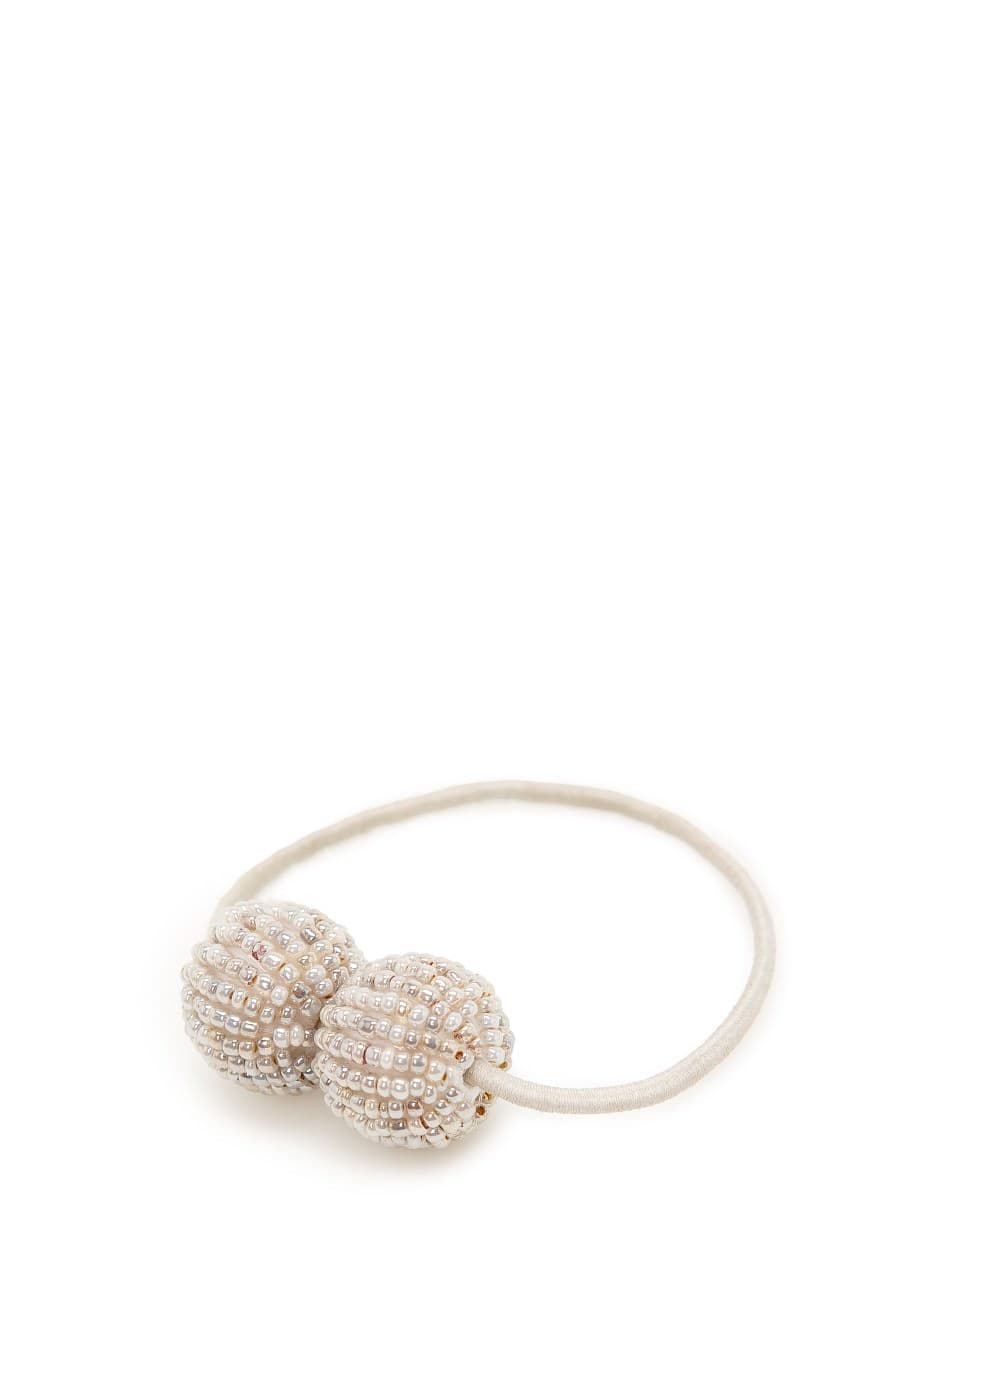 Beaded ball hair tie